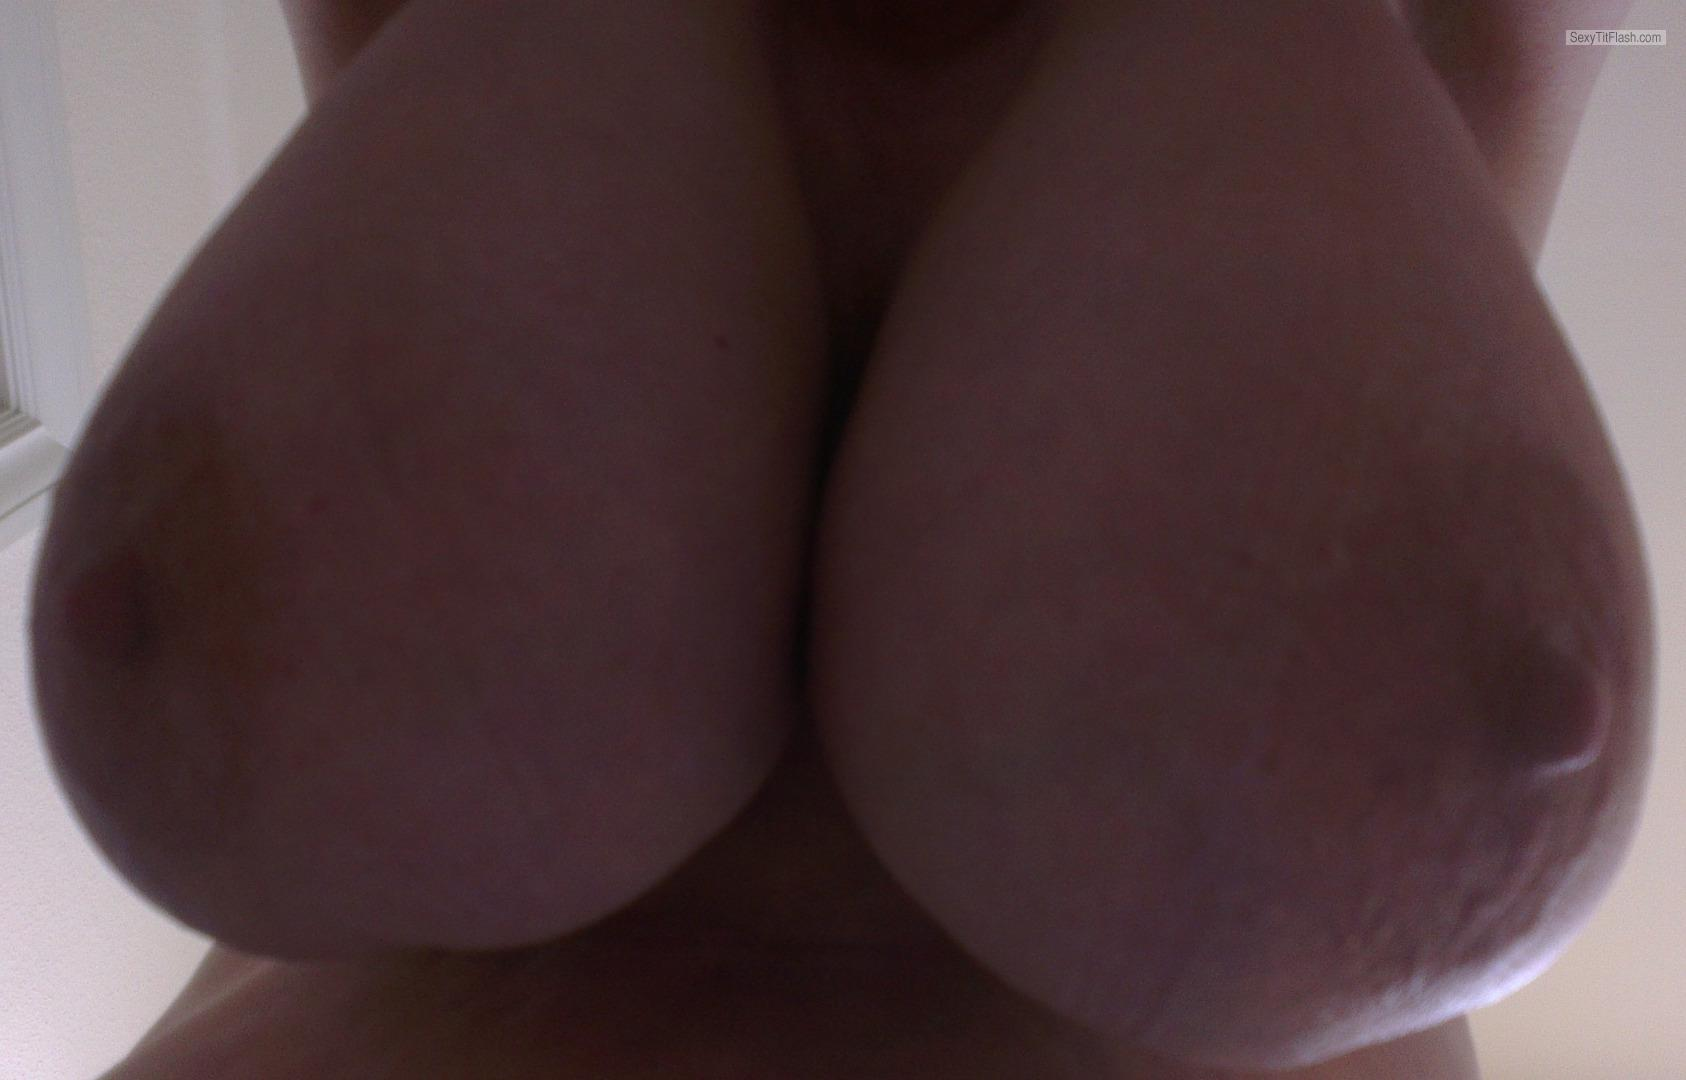 Tit Flash: Girlfriend's Big Tits - Big Boobs Lovers from Denmark